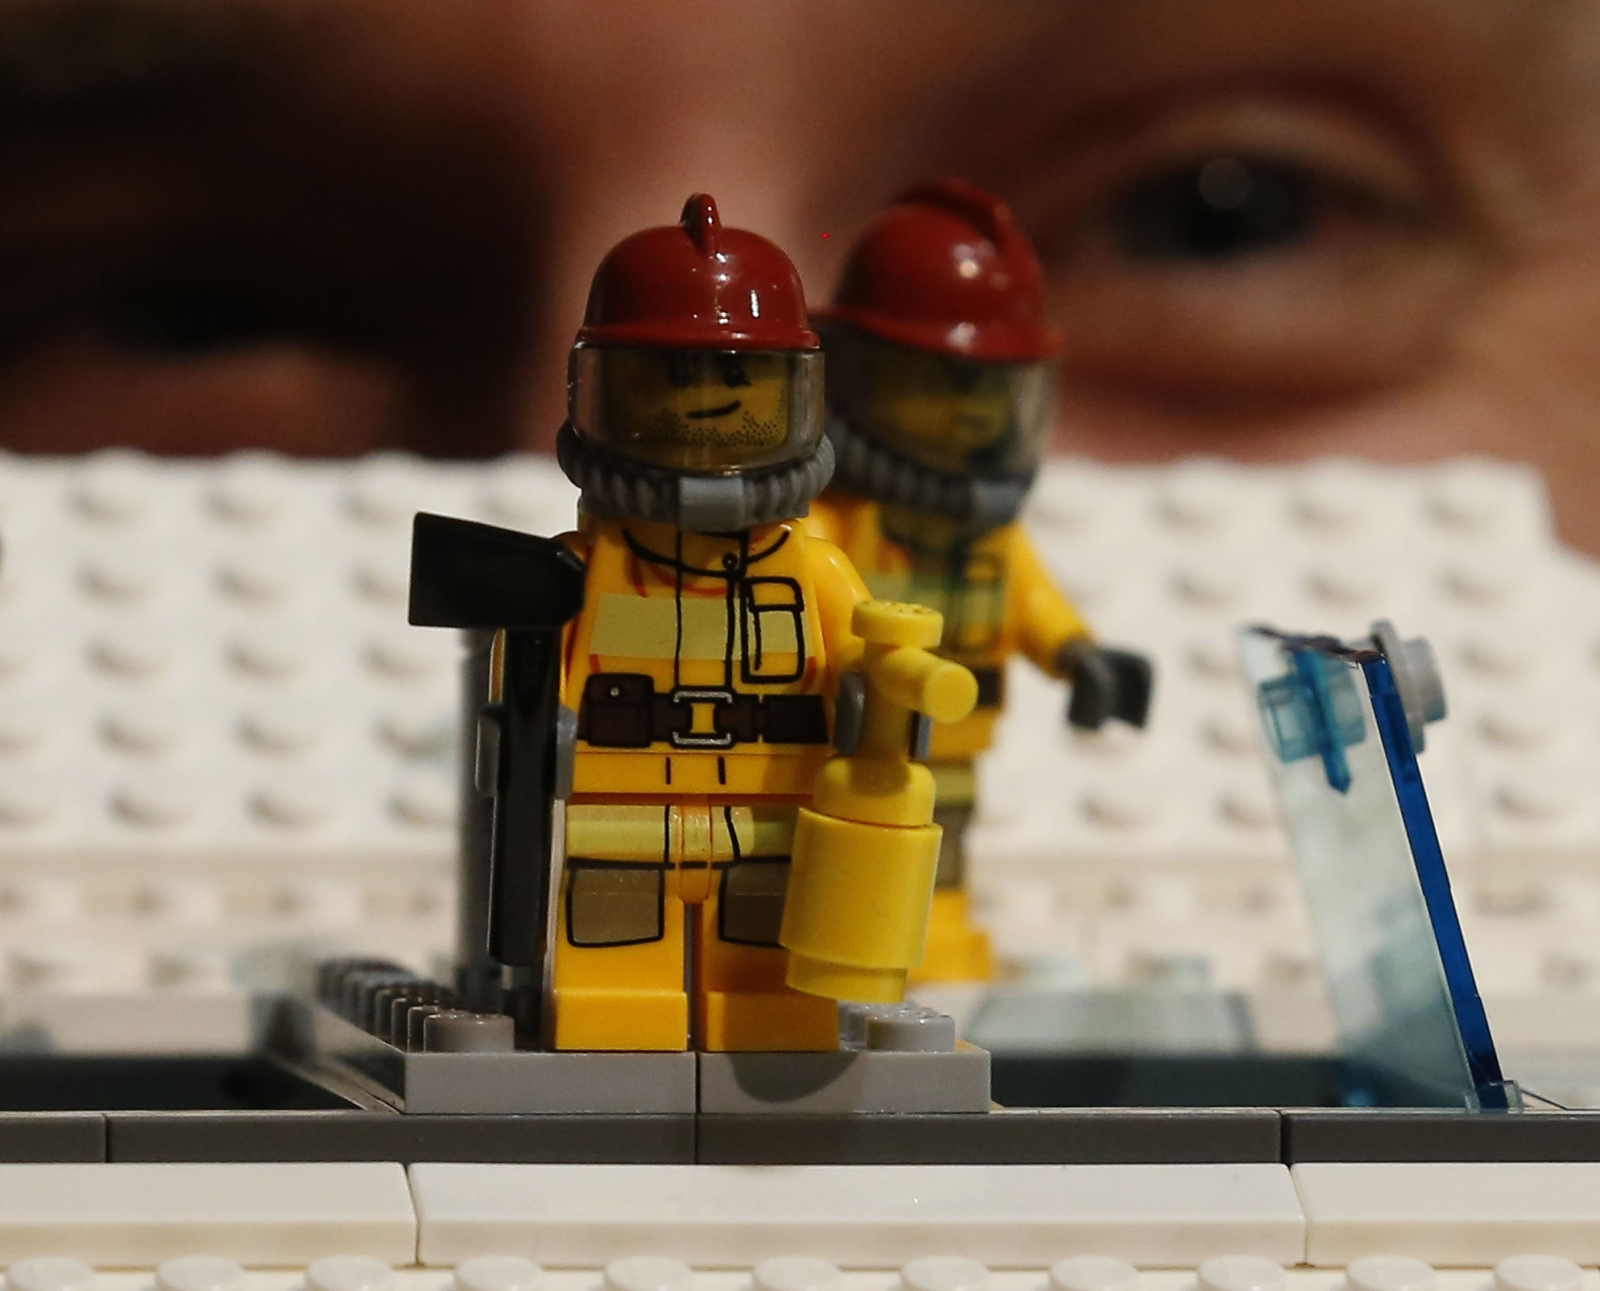 Lego eye tribe tracking